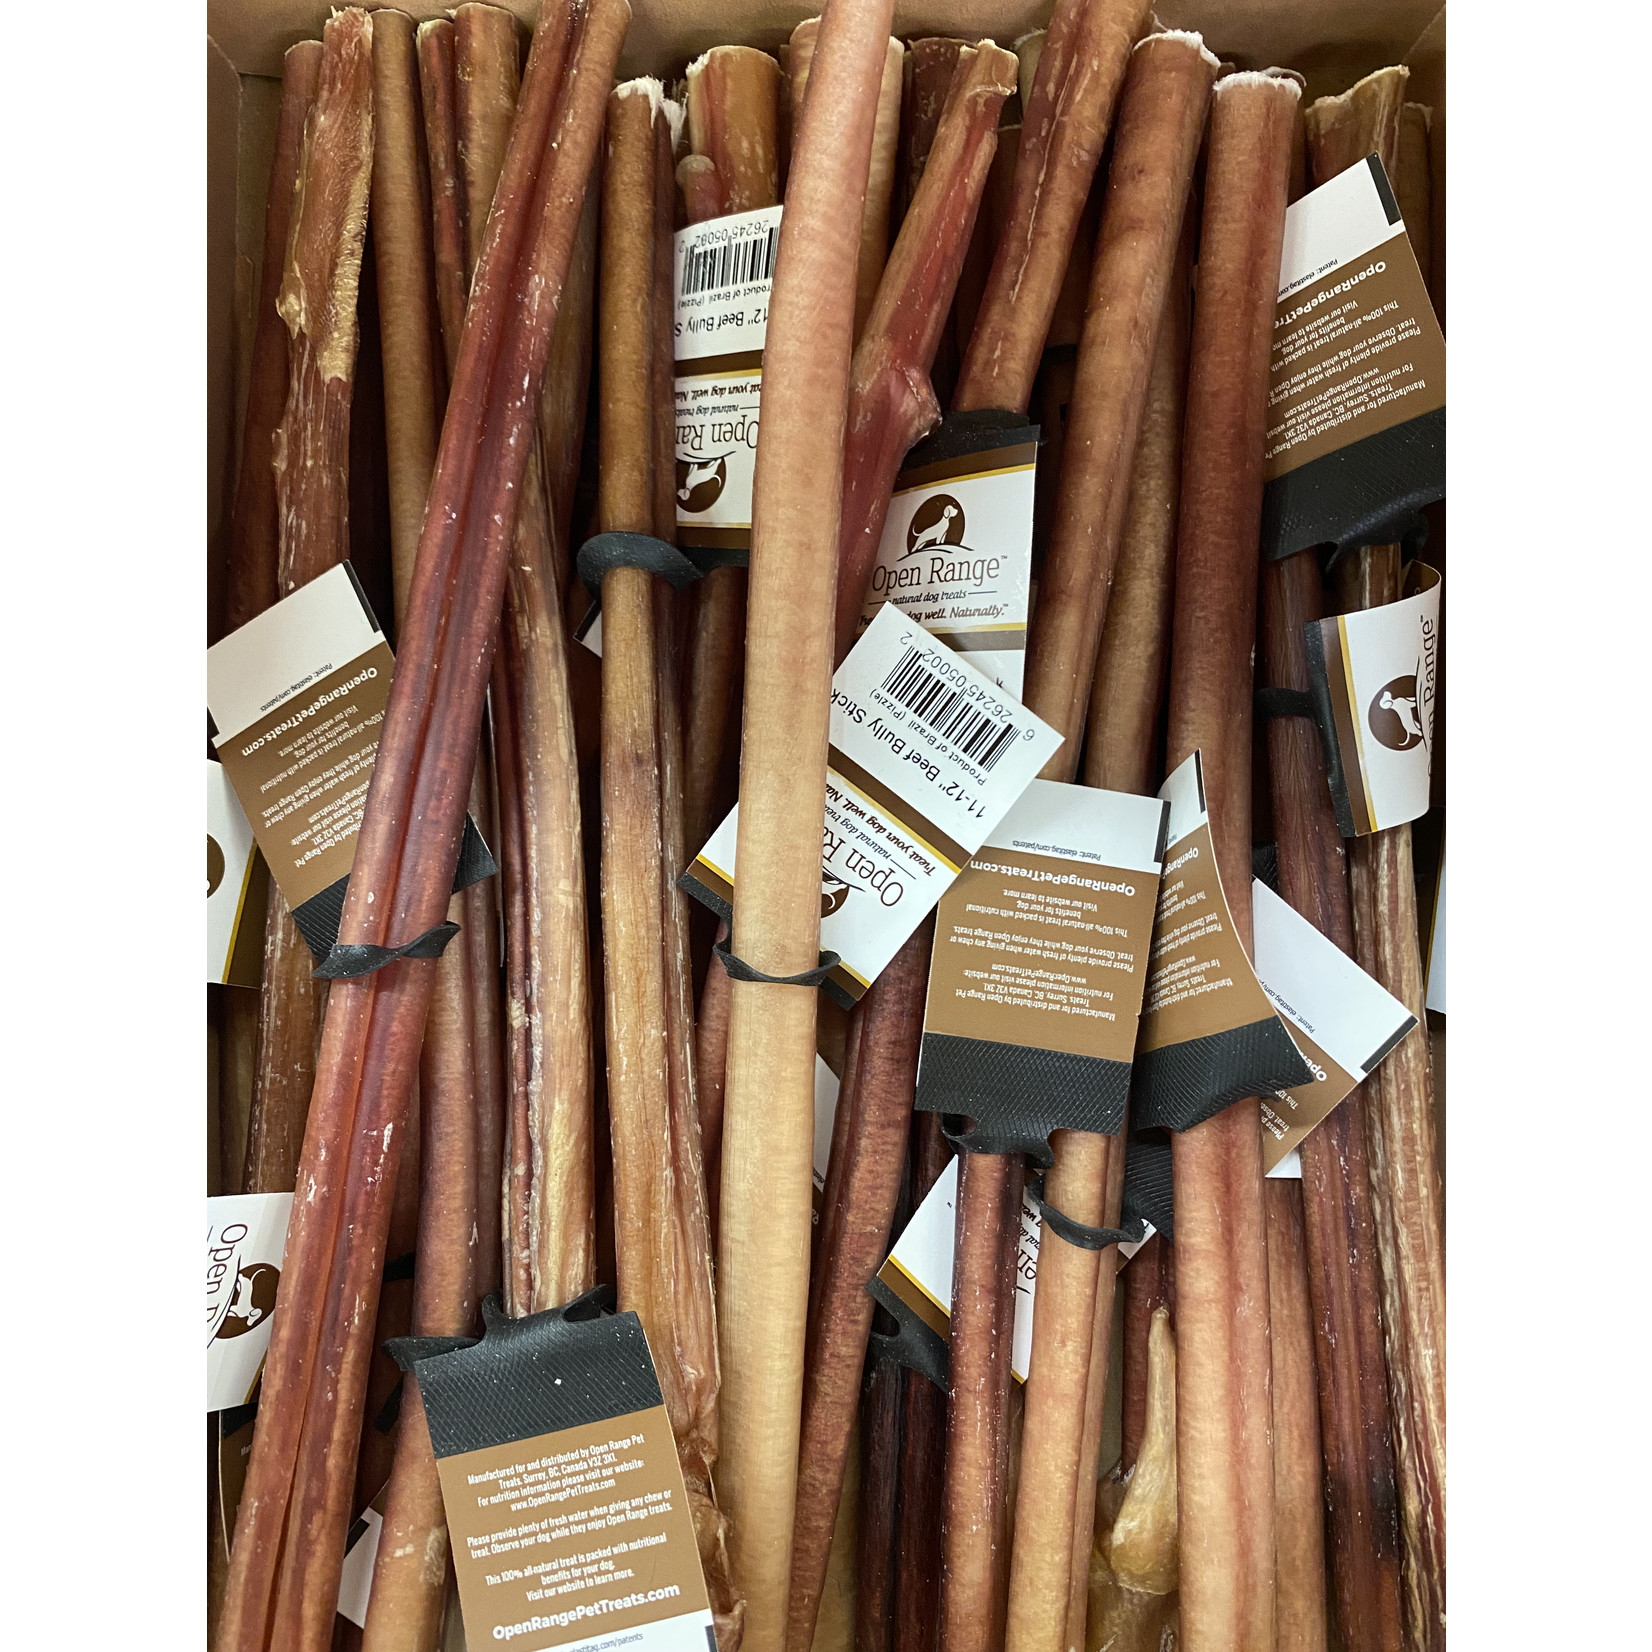 """Open Range Open Range Odour Controlled thick Bully Stick 11_12"""""""